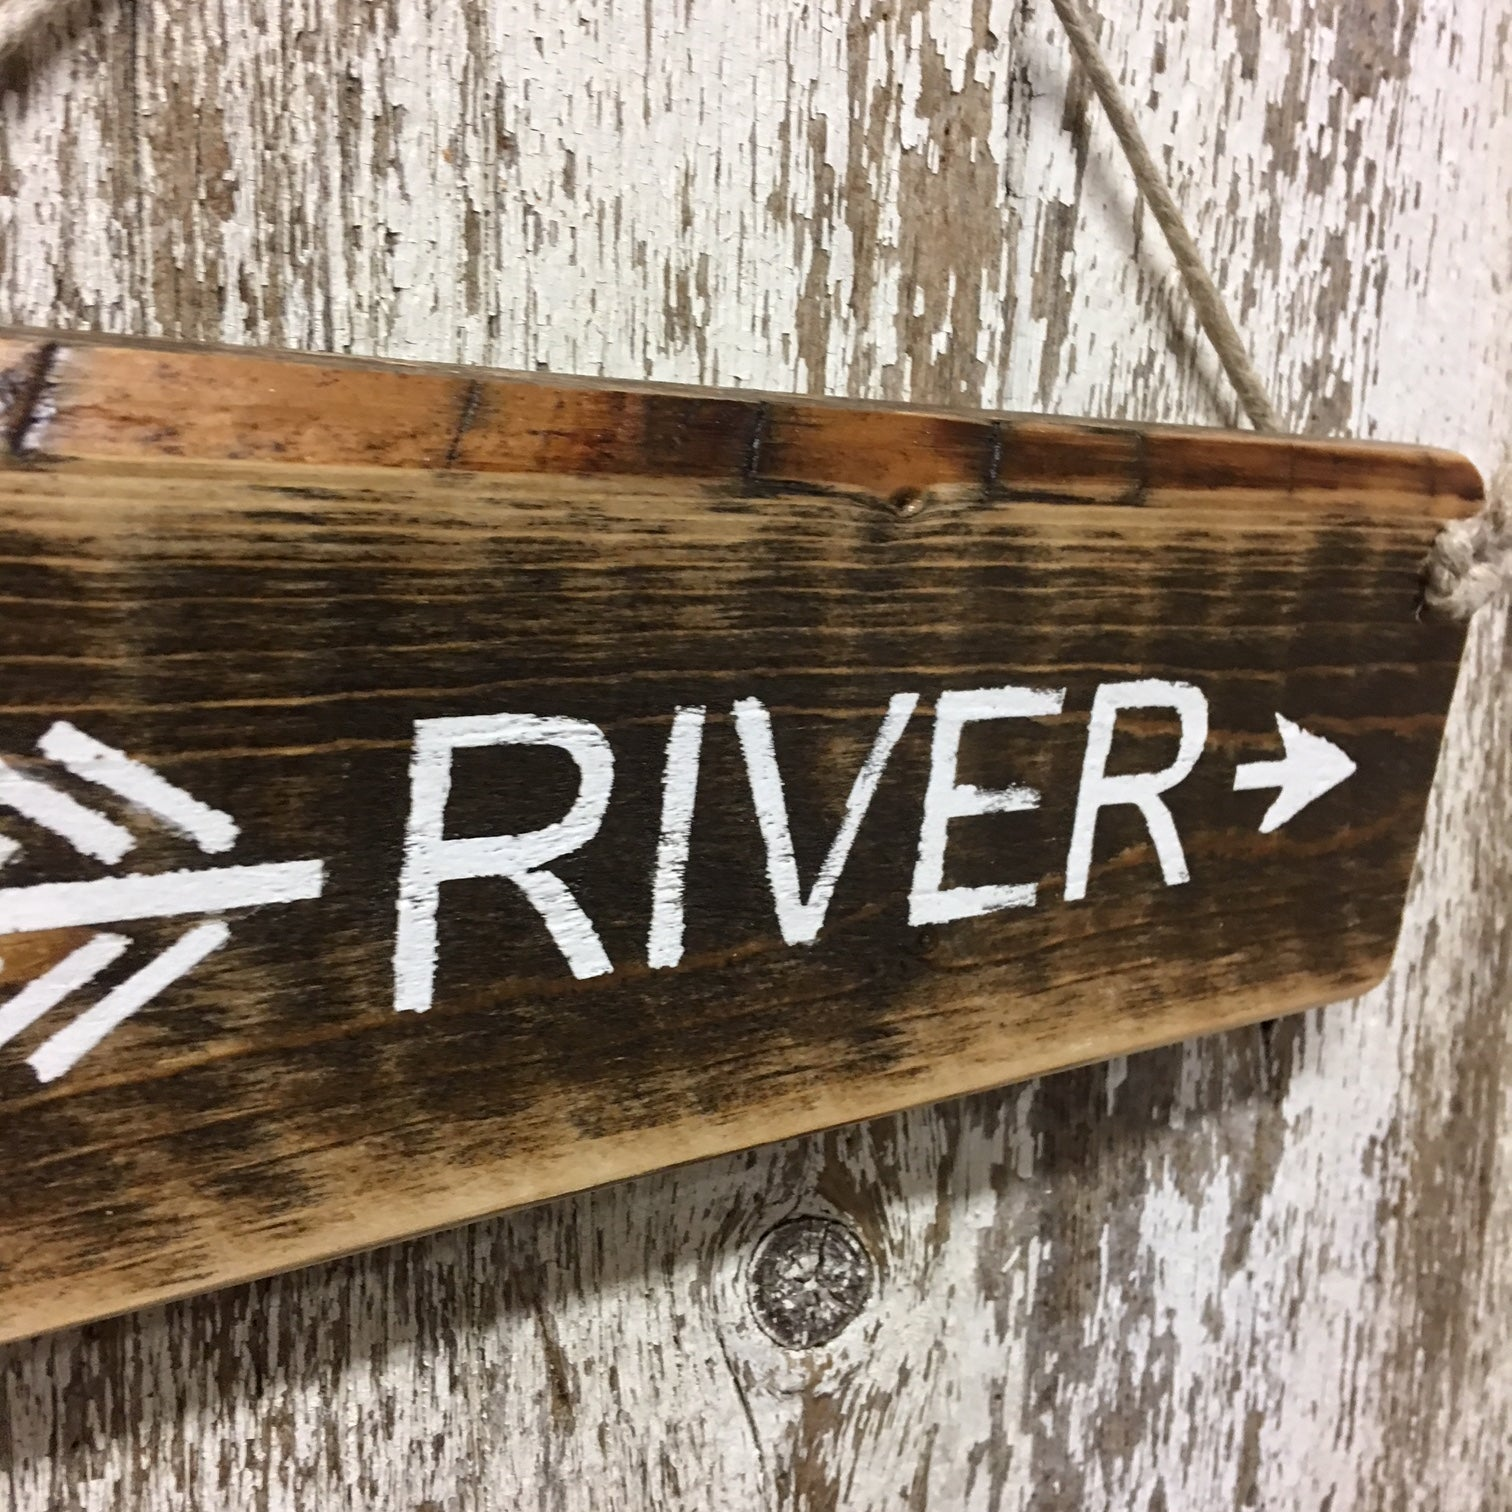 river house decor and river life gift ideas on river arrow wood sign